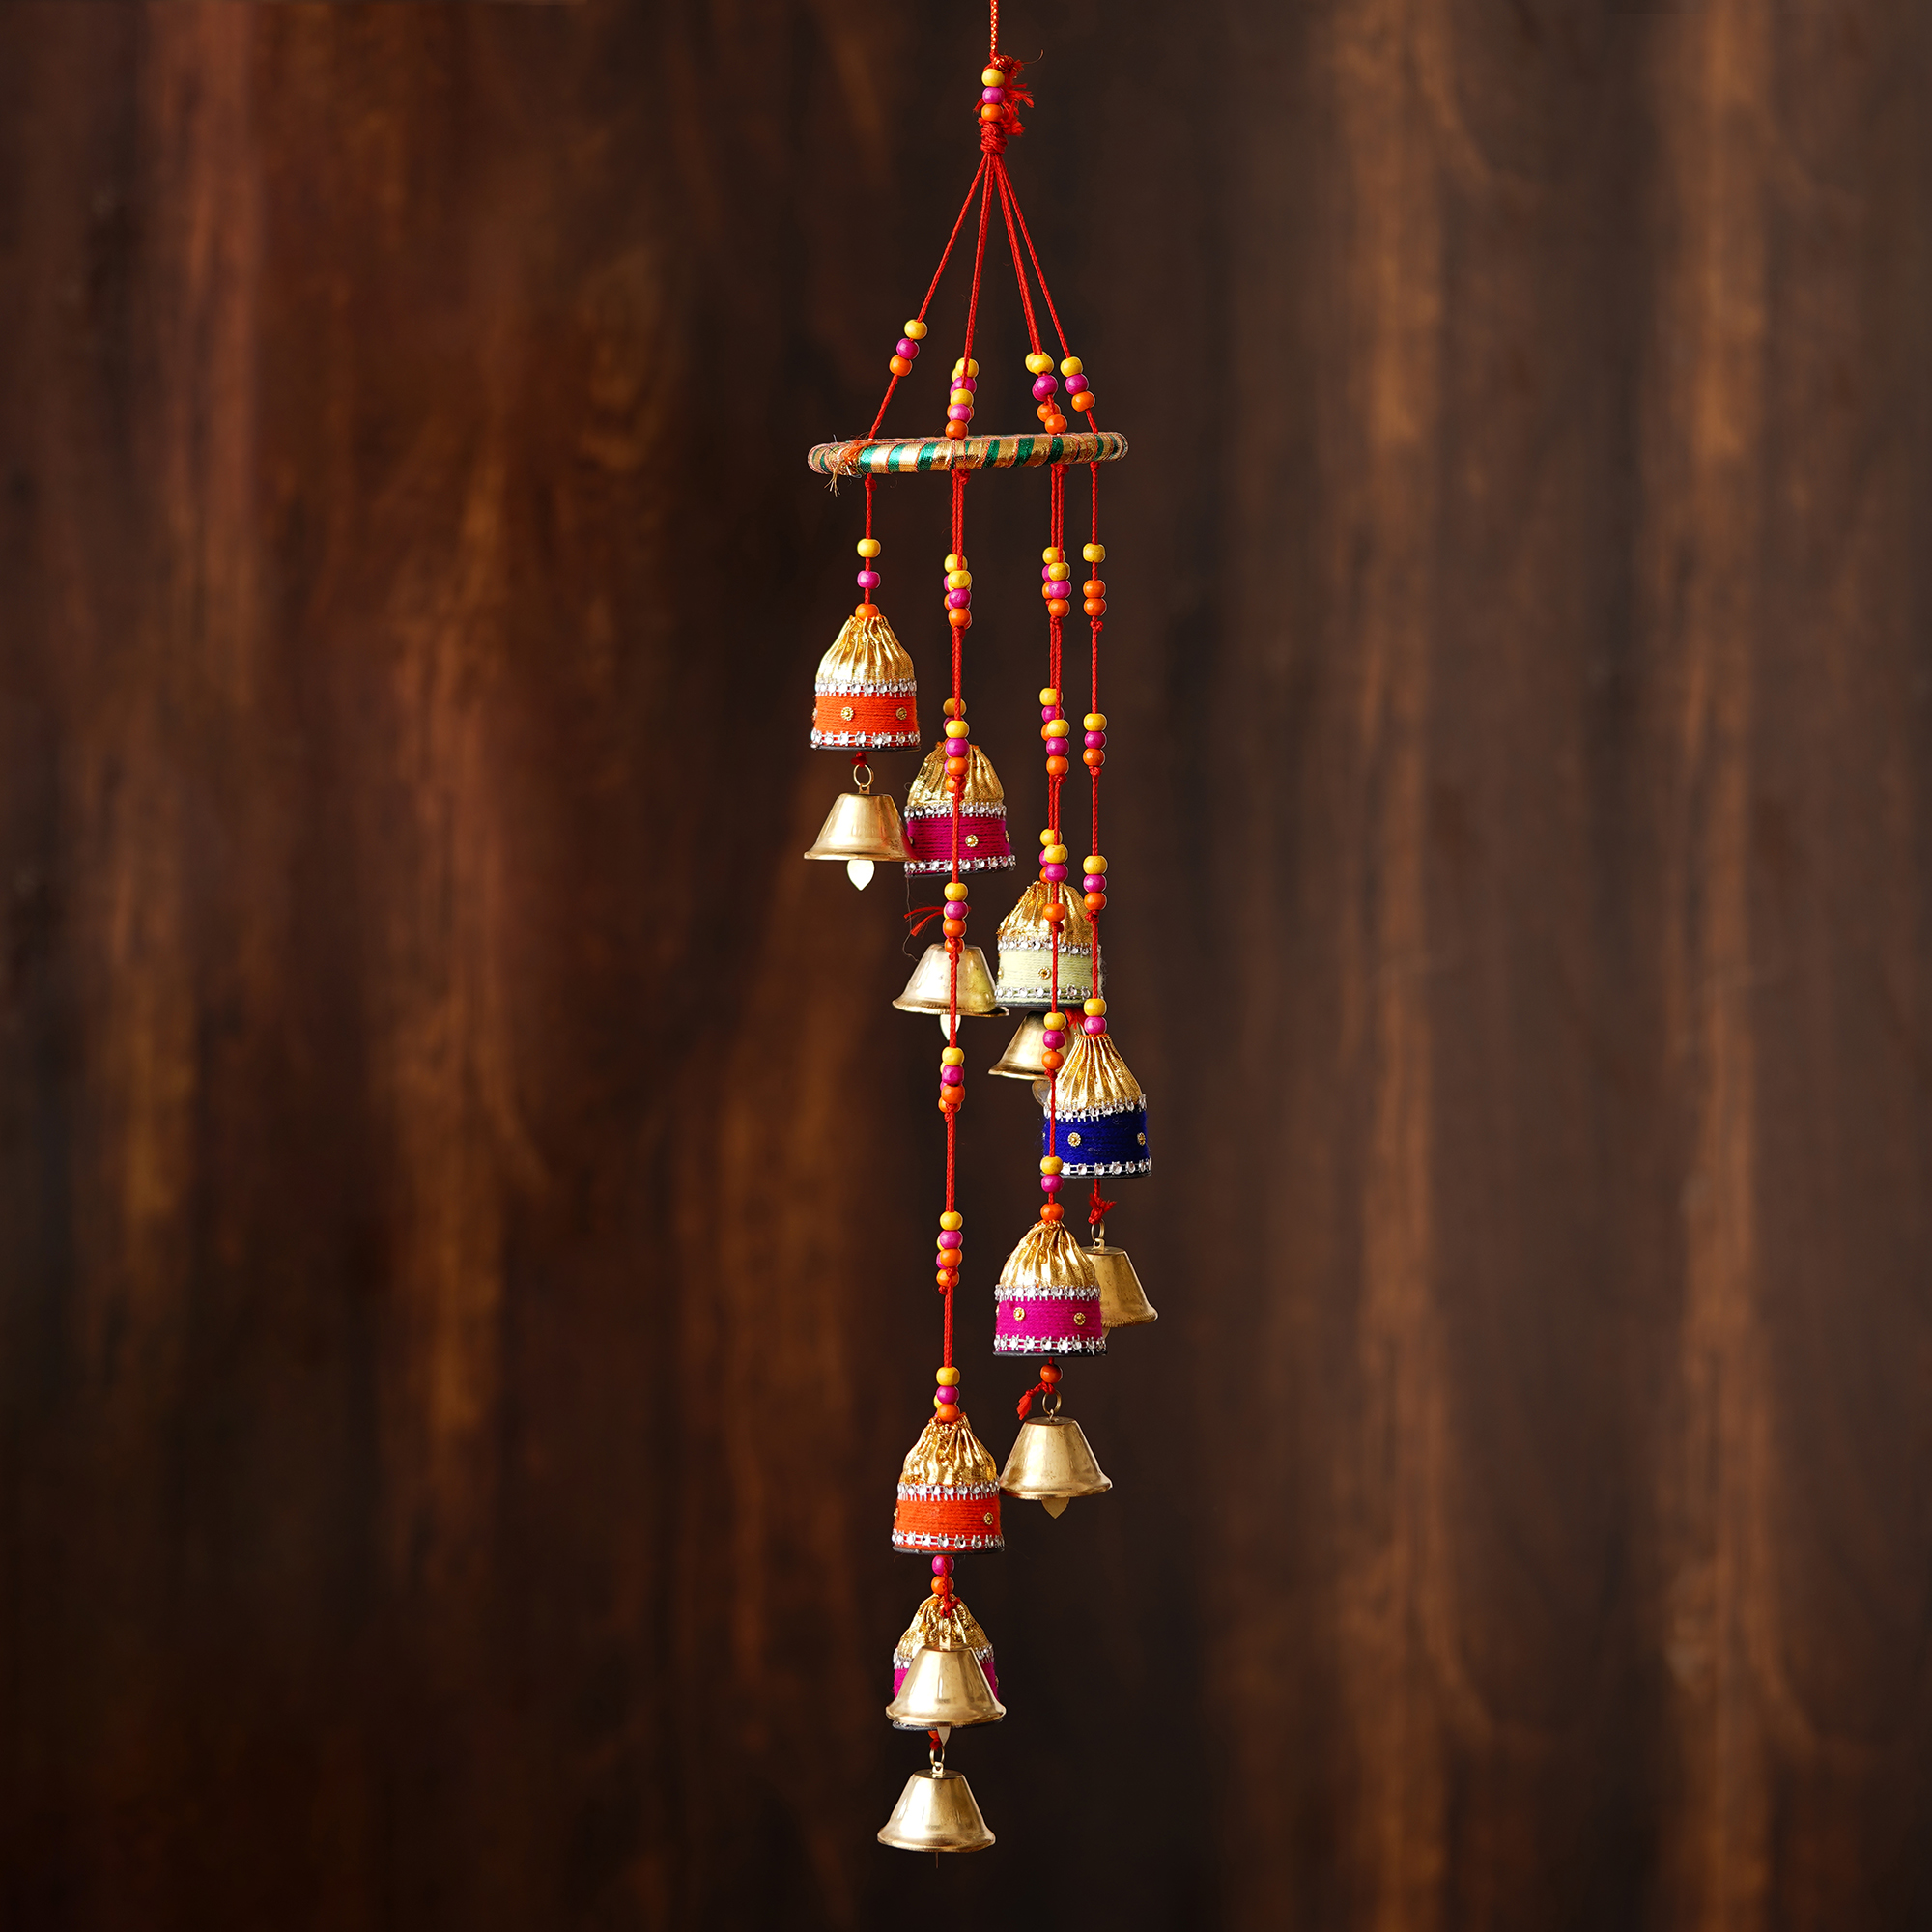 Handcrafted Decorative Colorful Spiral Wall/Door/Window Hanging Bells Indian Home Decor